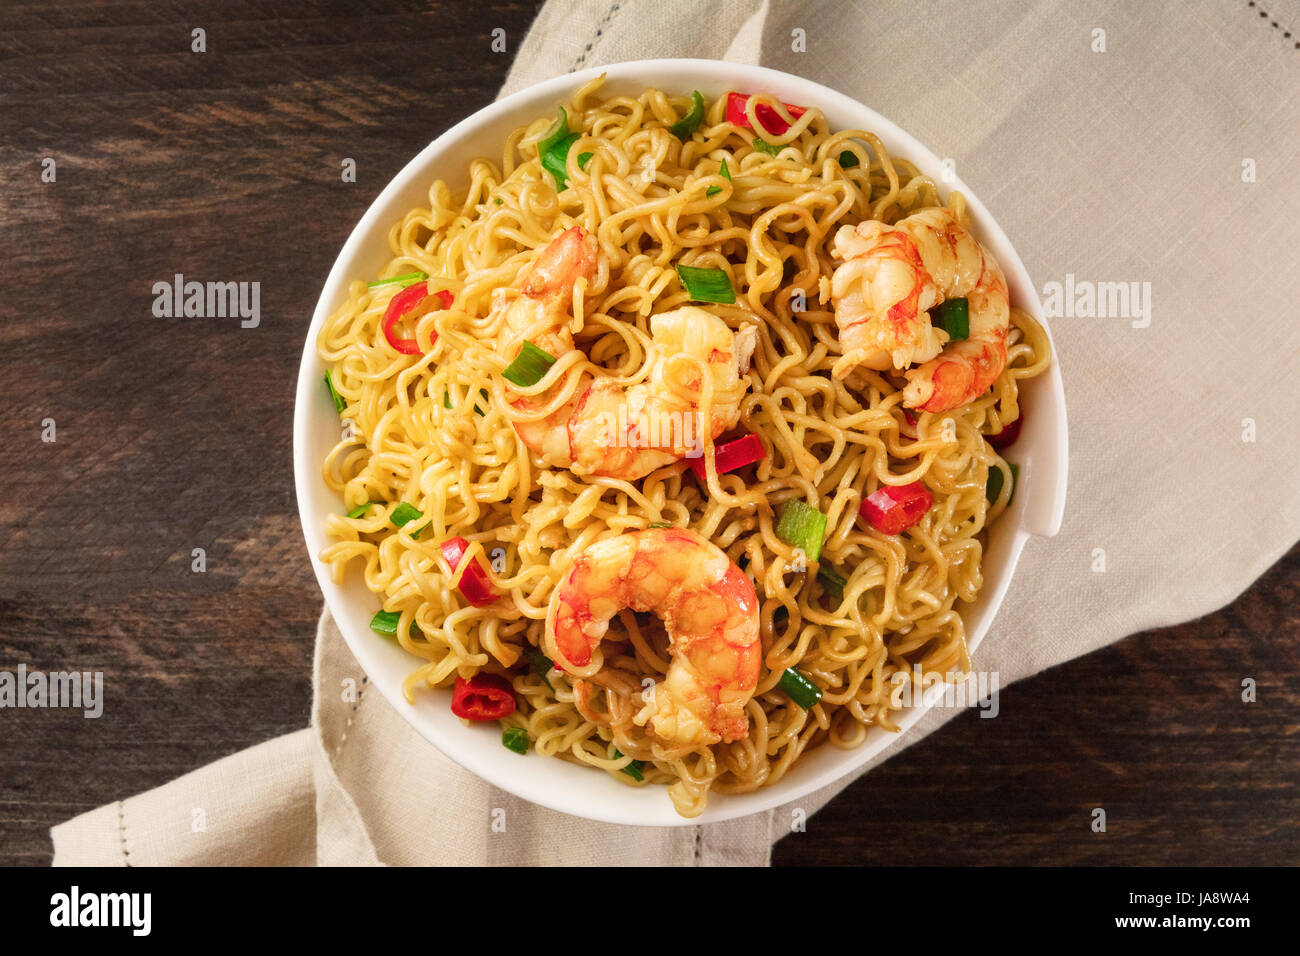 Instant noodles with vegetables, shrimps, and copy space - Stock Image